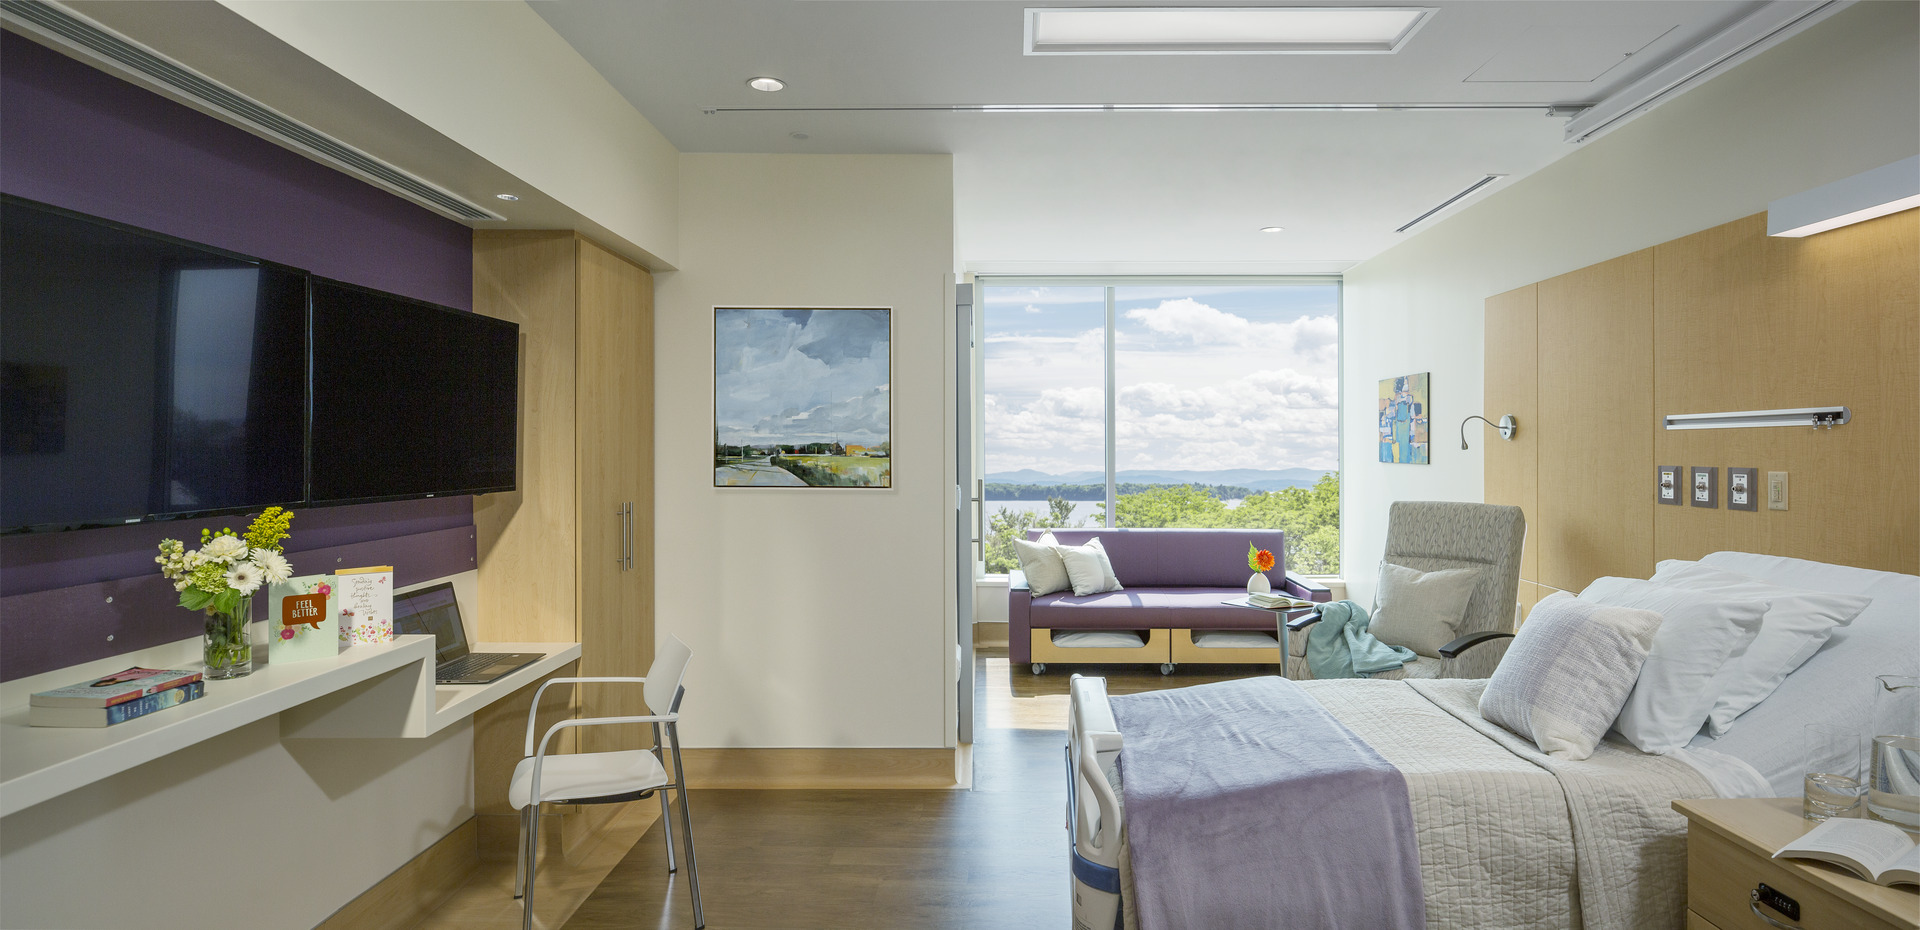 Patient room wth television, desk, laptop, chairs, couches, books, flowers and a bed, with paintings on the walls